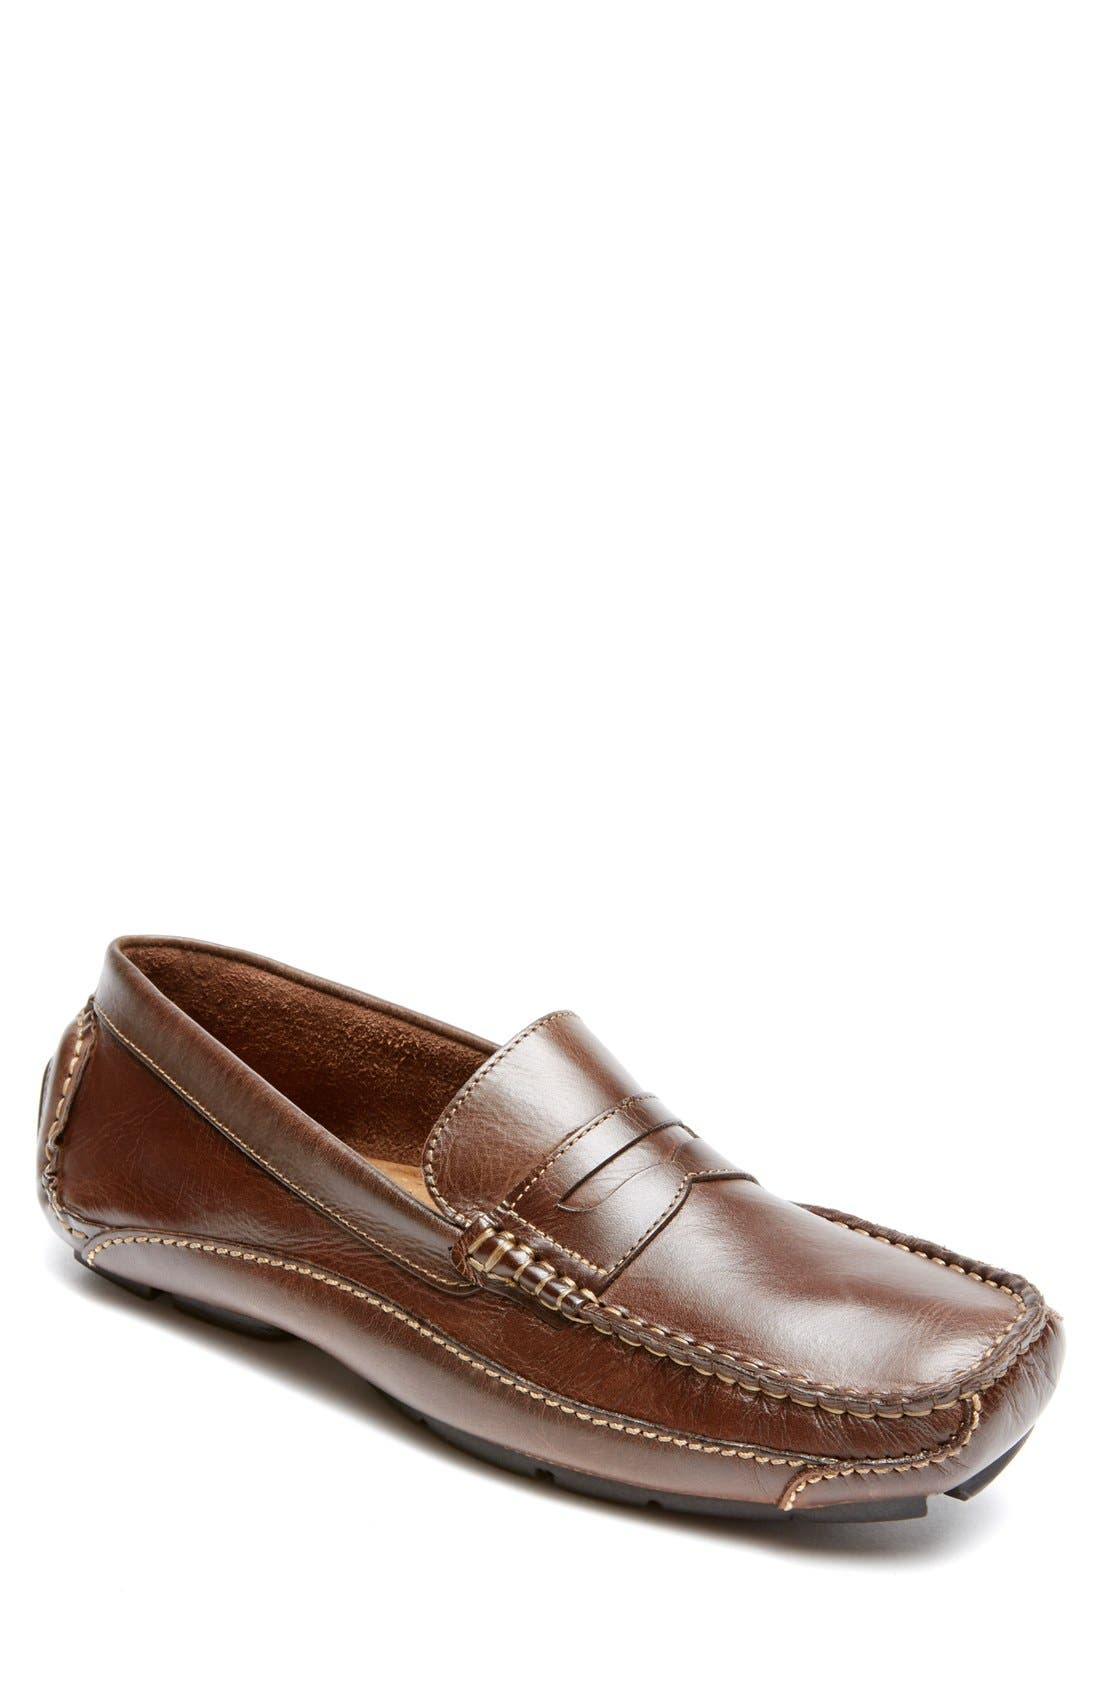 Luxury Cruise Penny Loafer,                             Main thumbnail 1, color,                             200